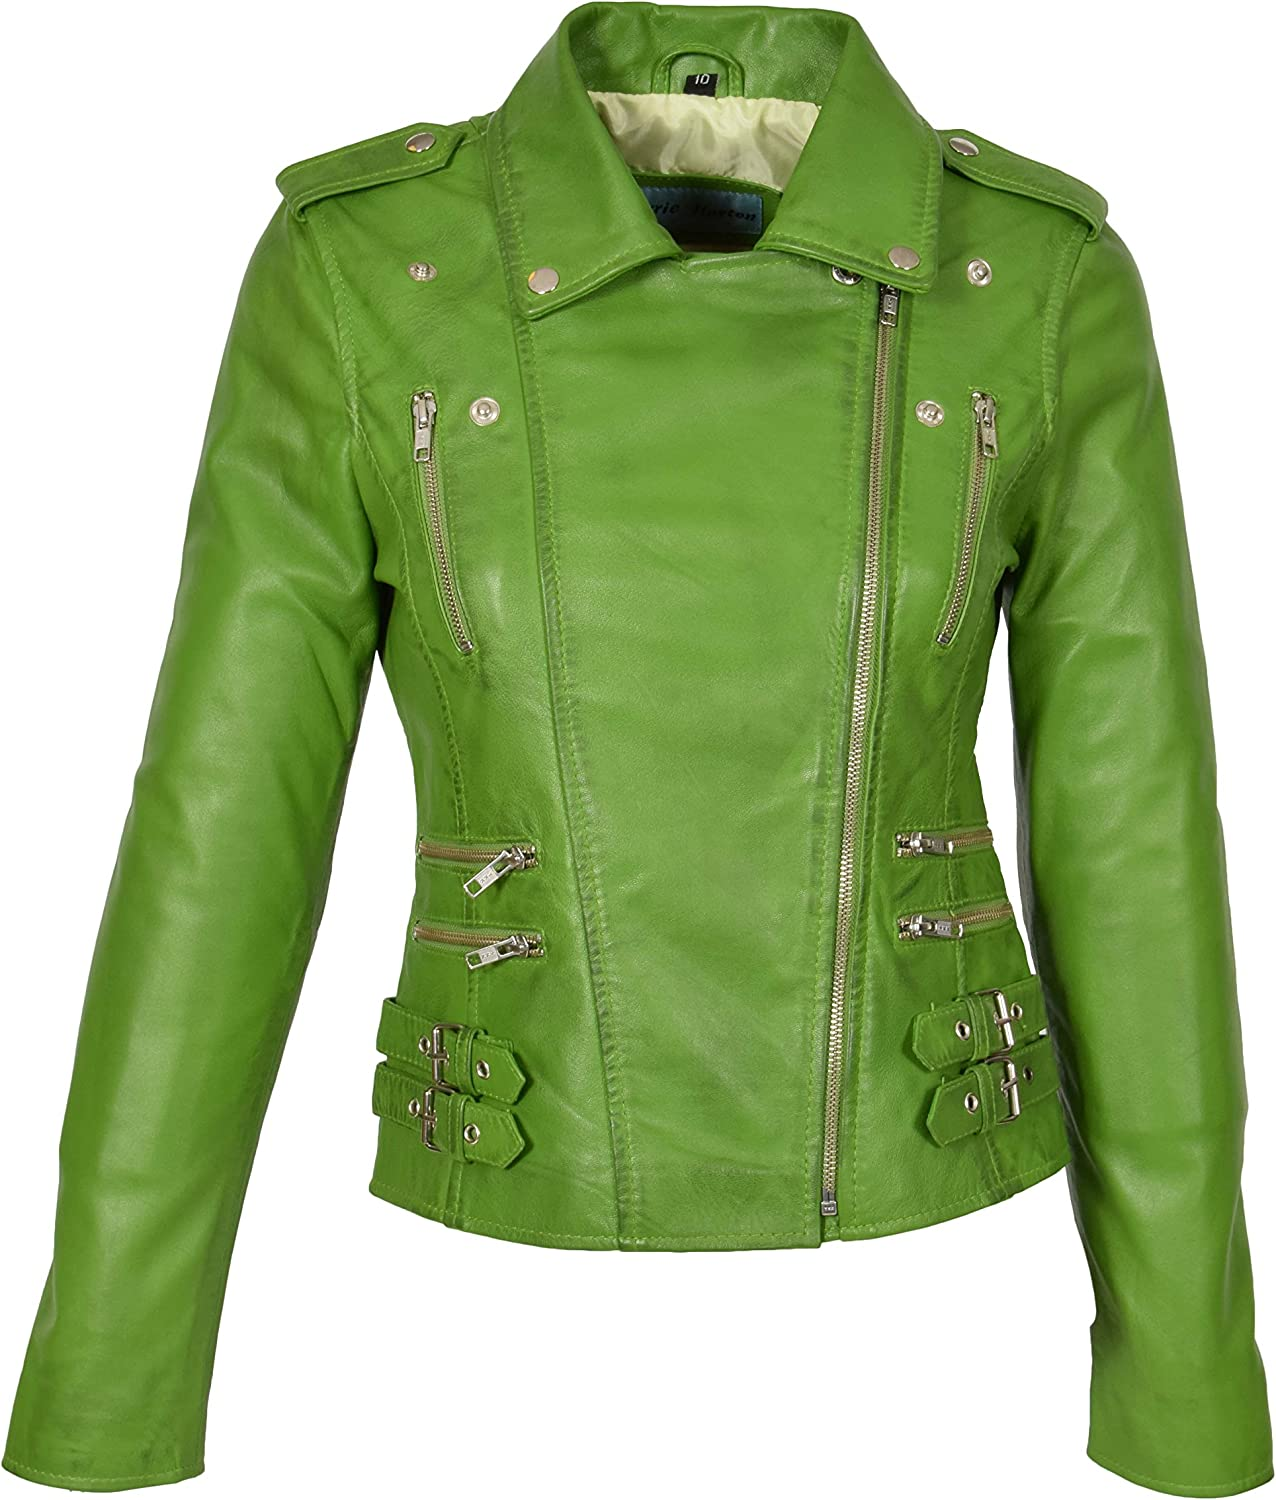 A1 FASHION GOODS Womens Leather Biker Jacket Girls Trendy Lime Coat Beyonce